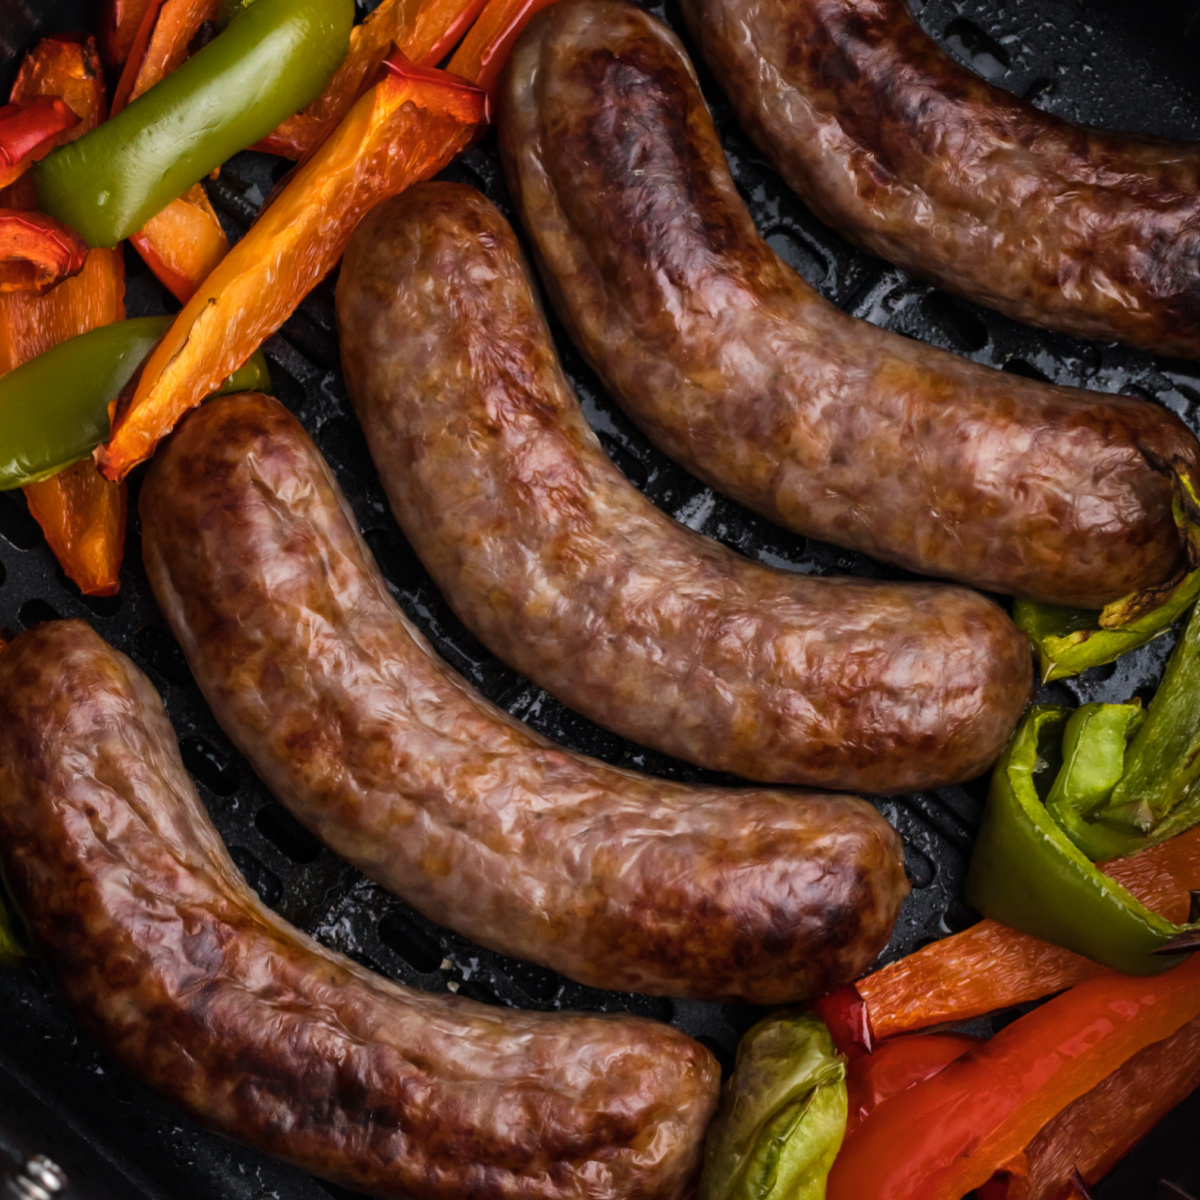 brats and bell peppers fully cooked in the basket of the air fryer.